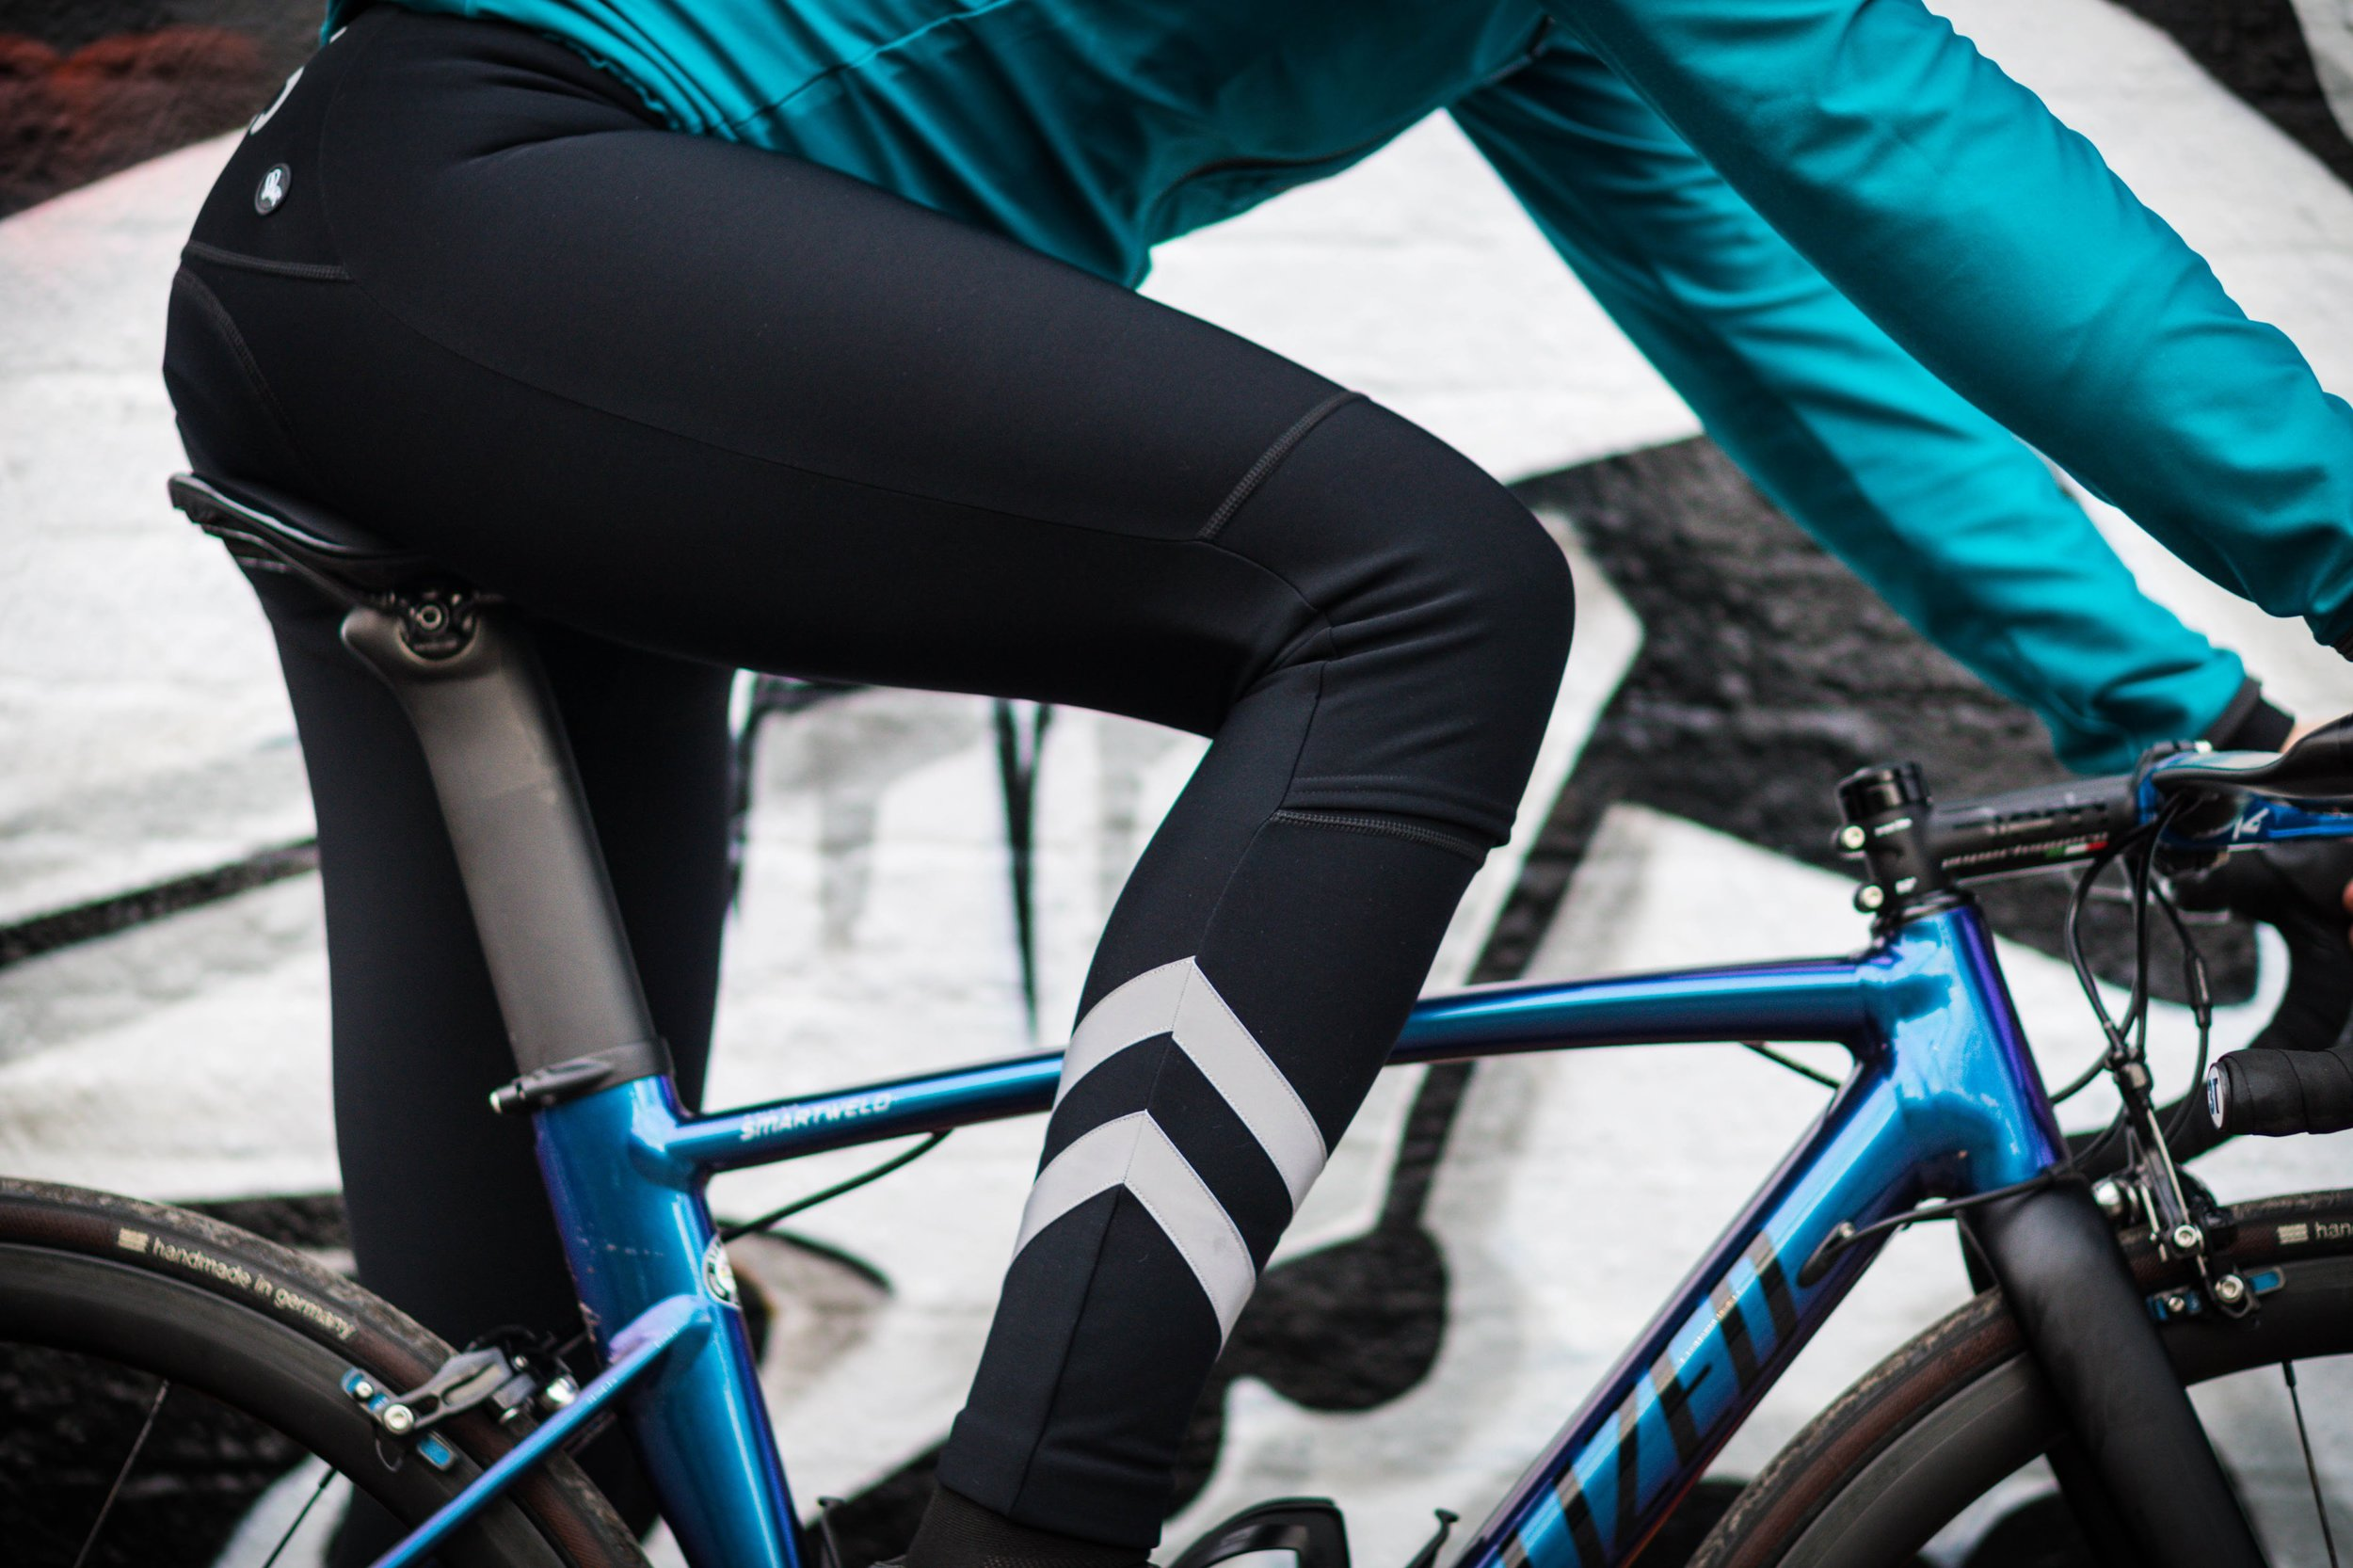 The Attacus thermal bib tights paired with the with the cold weather jacket